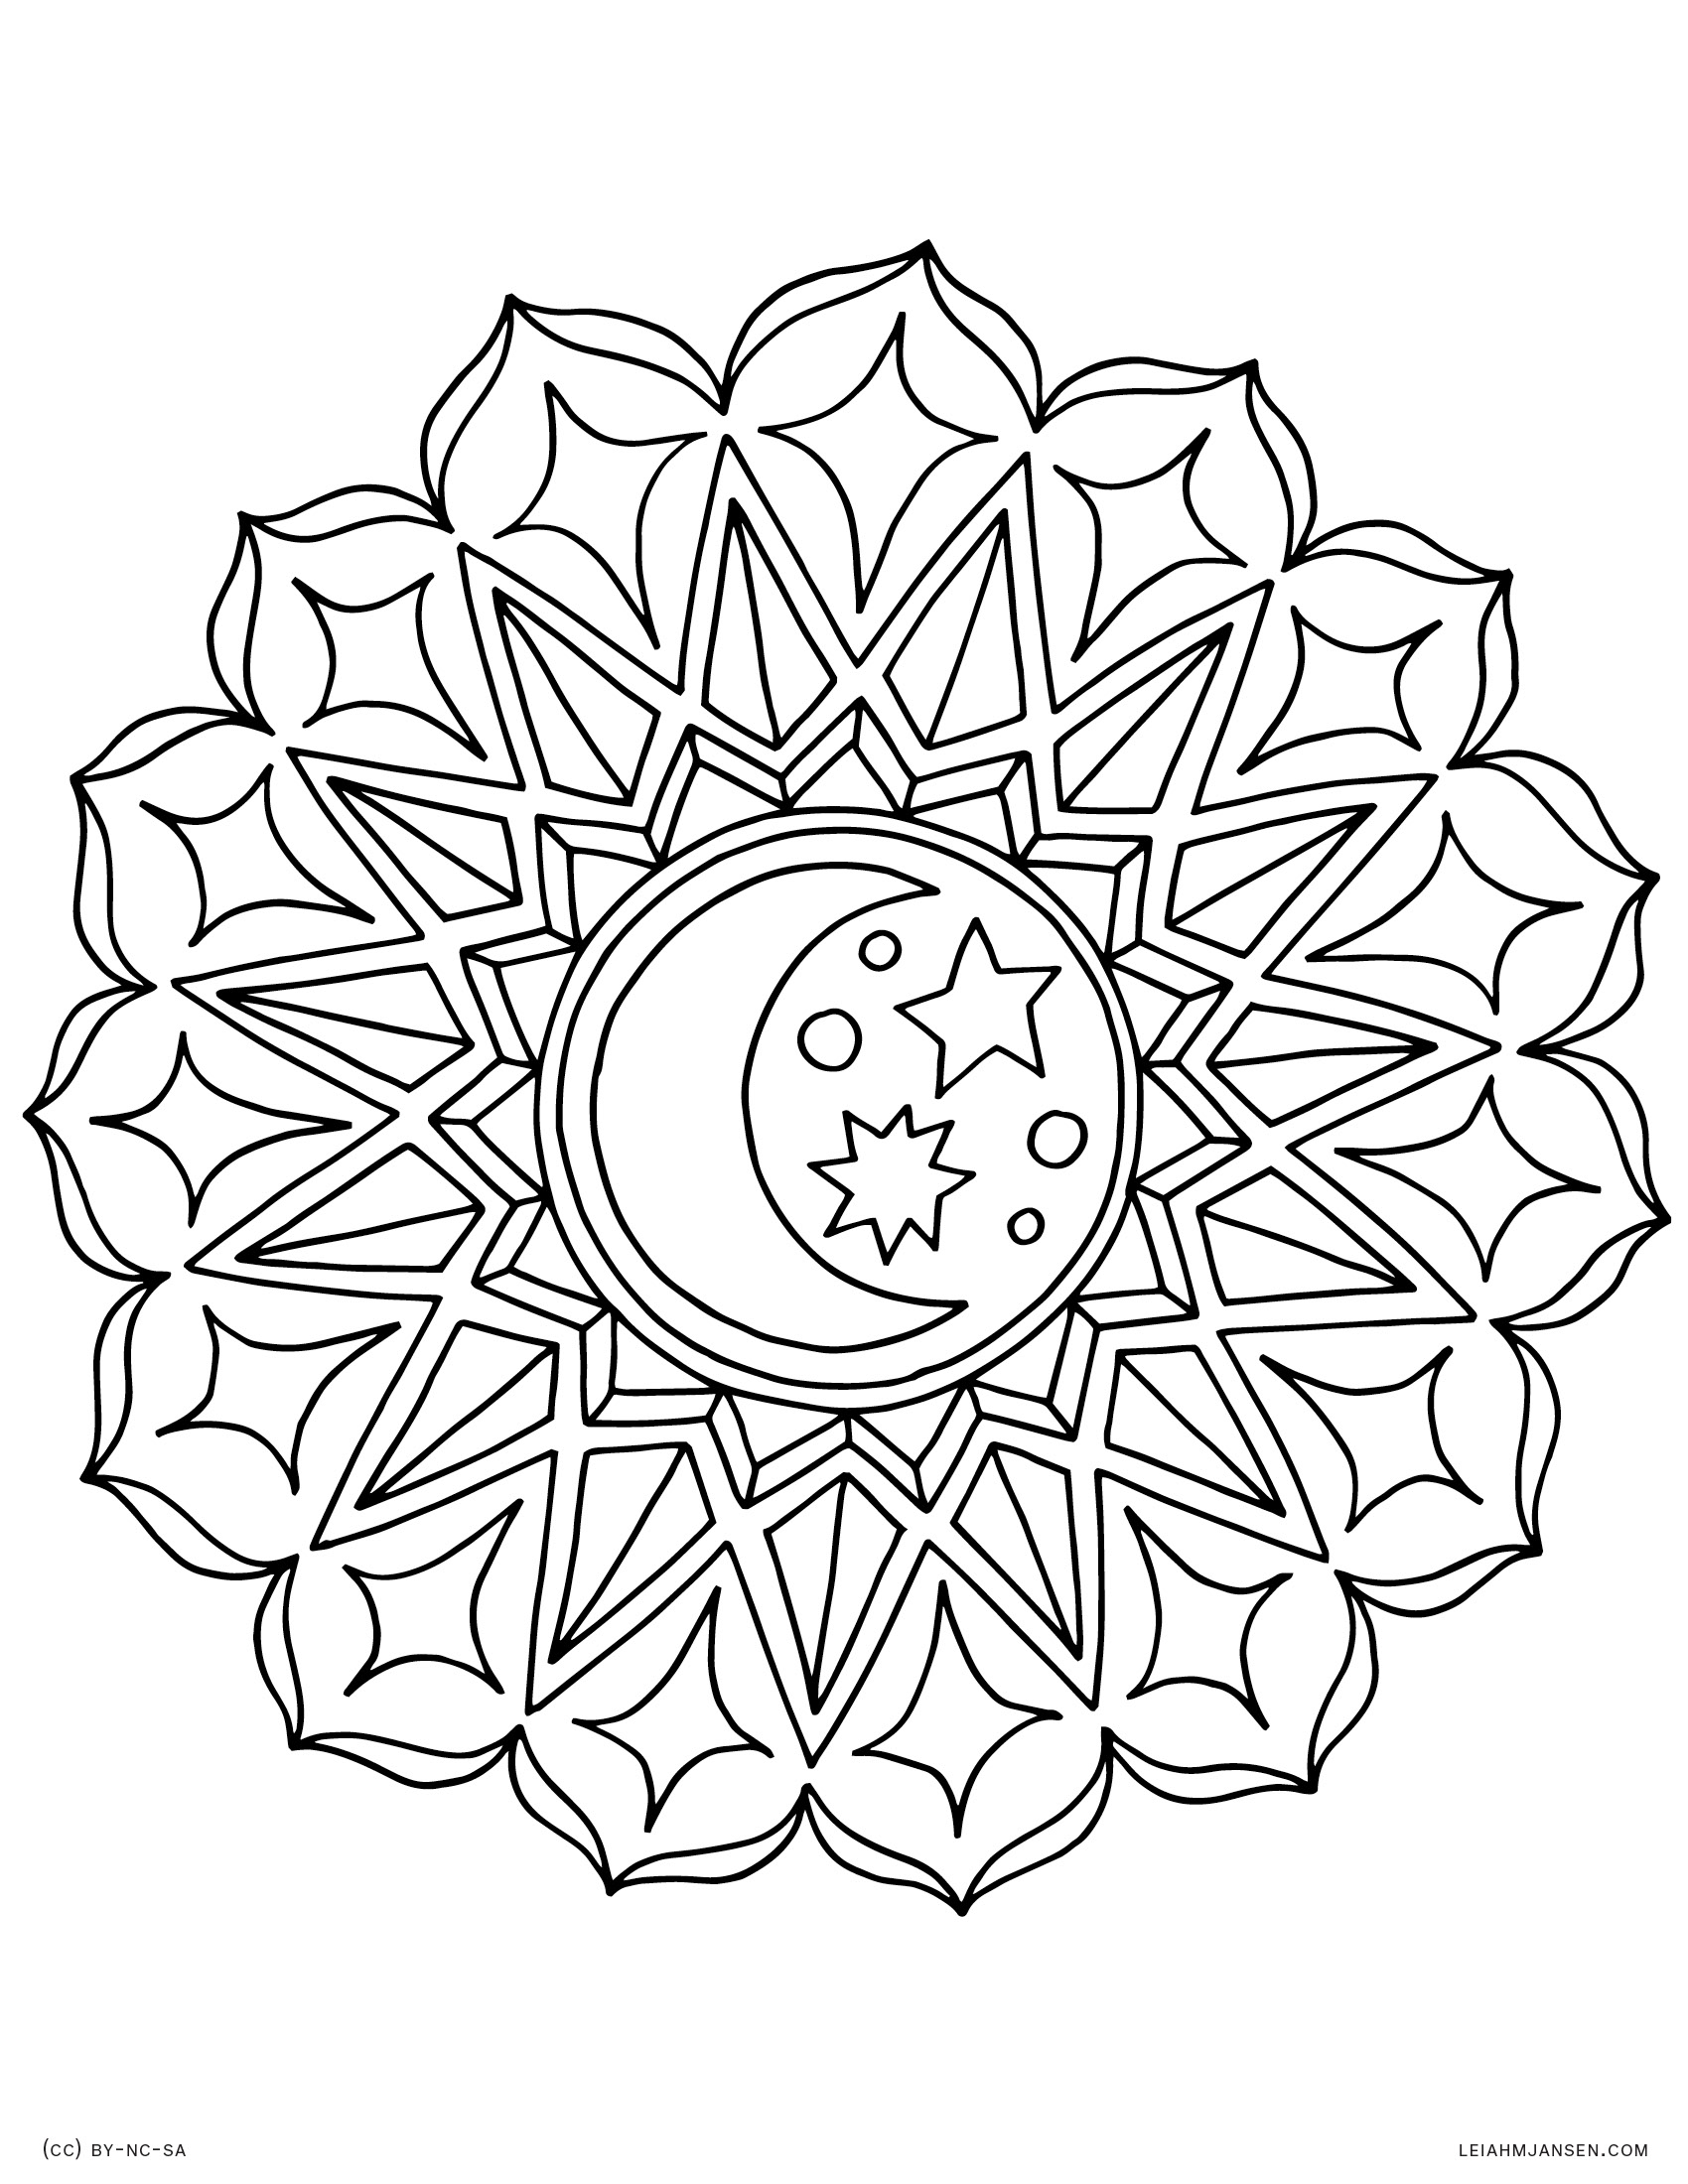 Colouring in pages mandala - Colouring In Pages Mandala 39